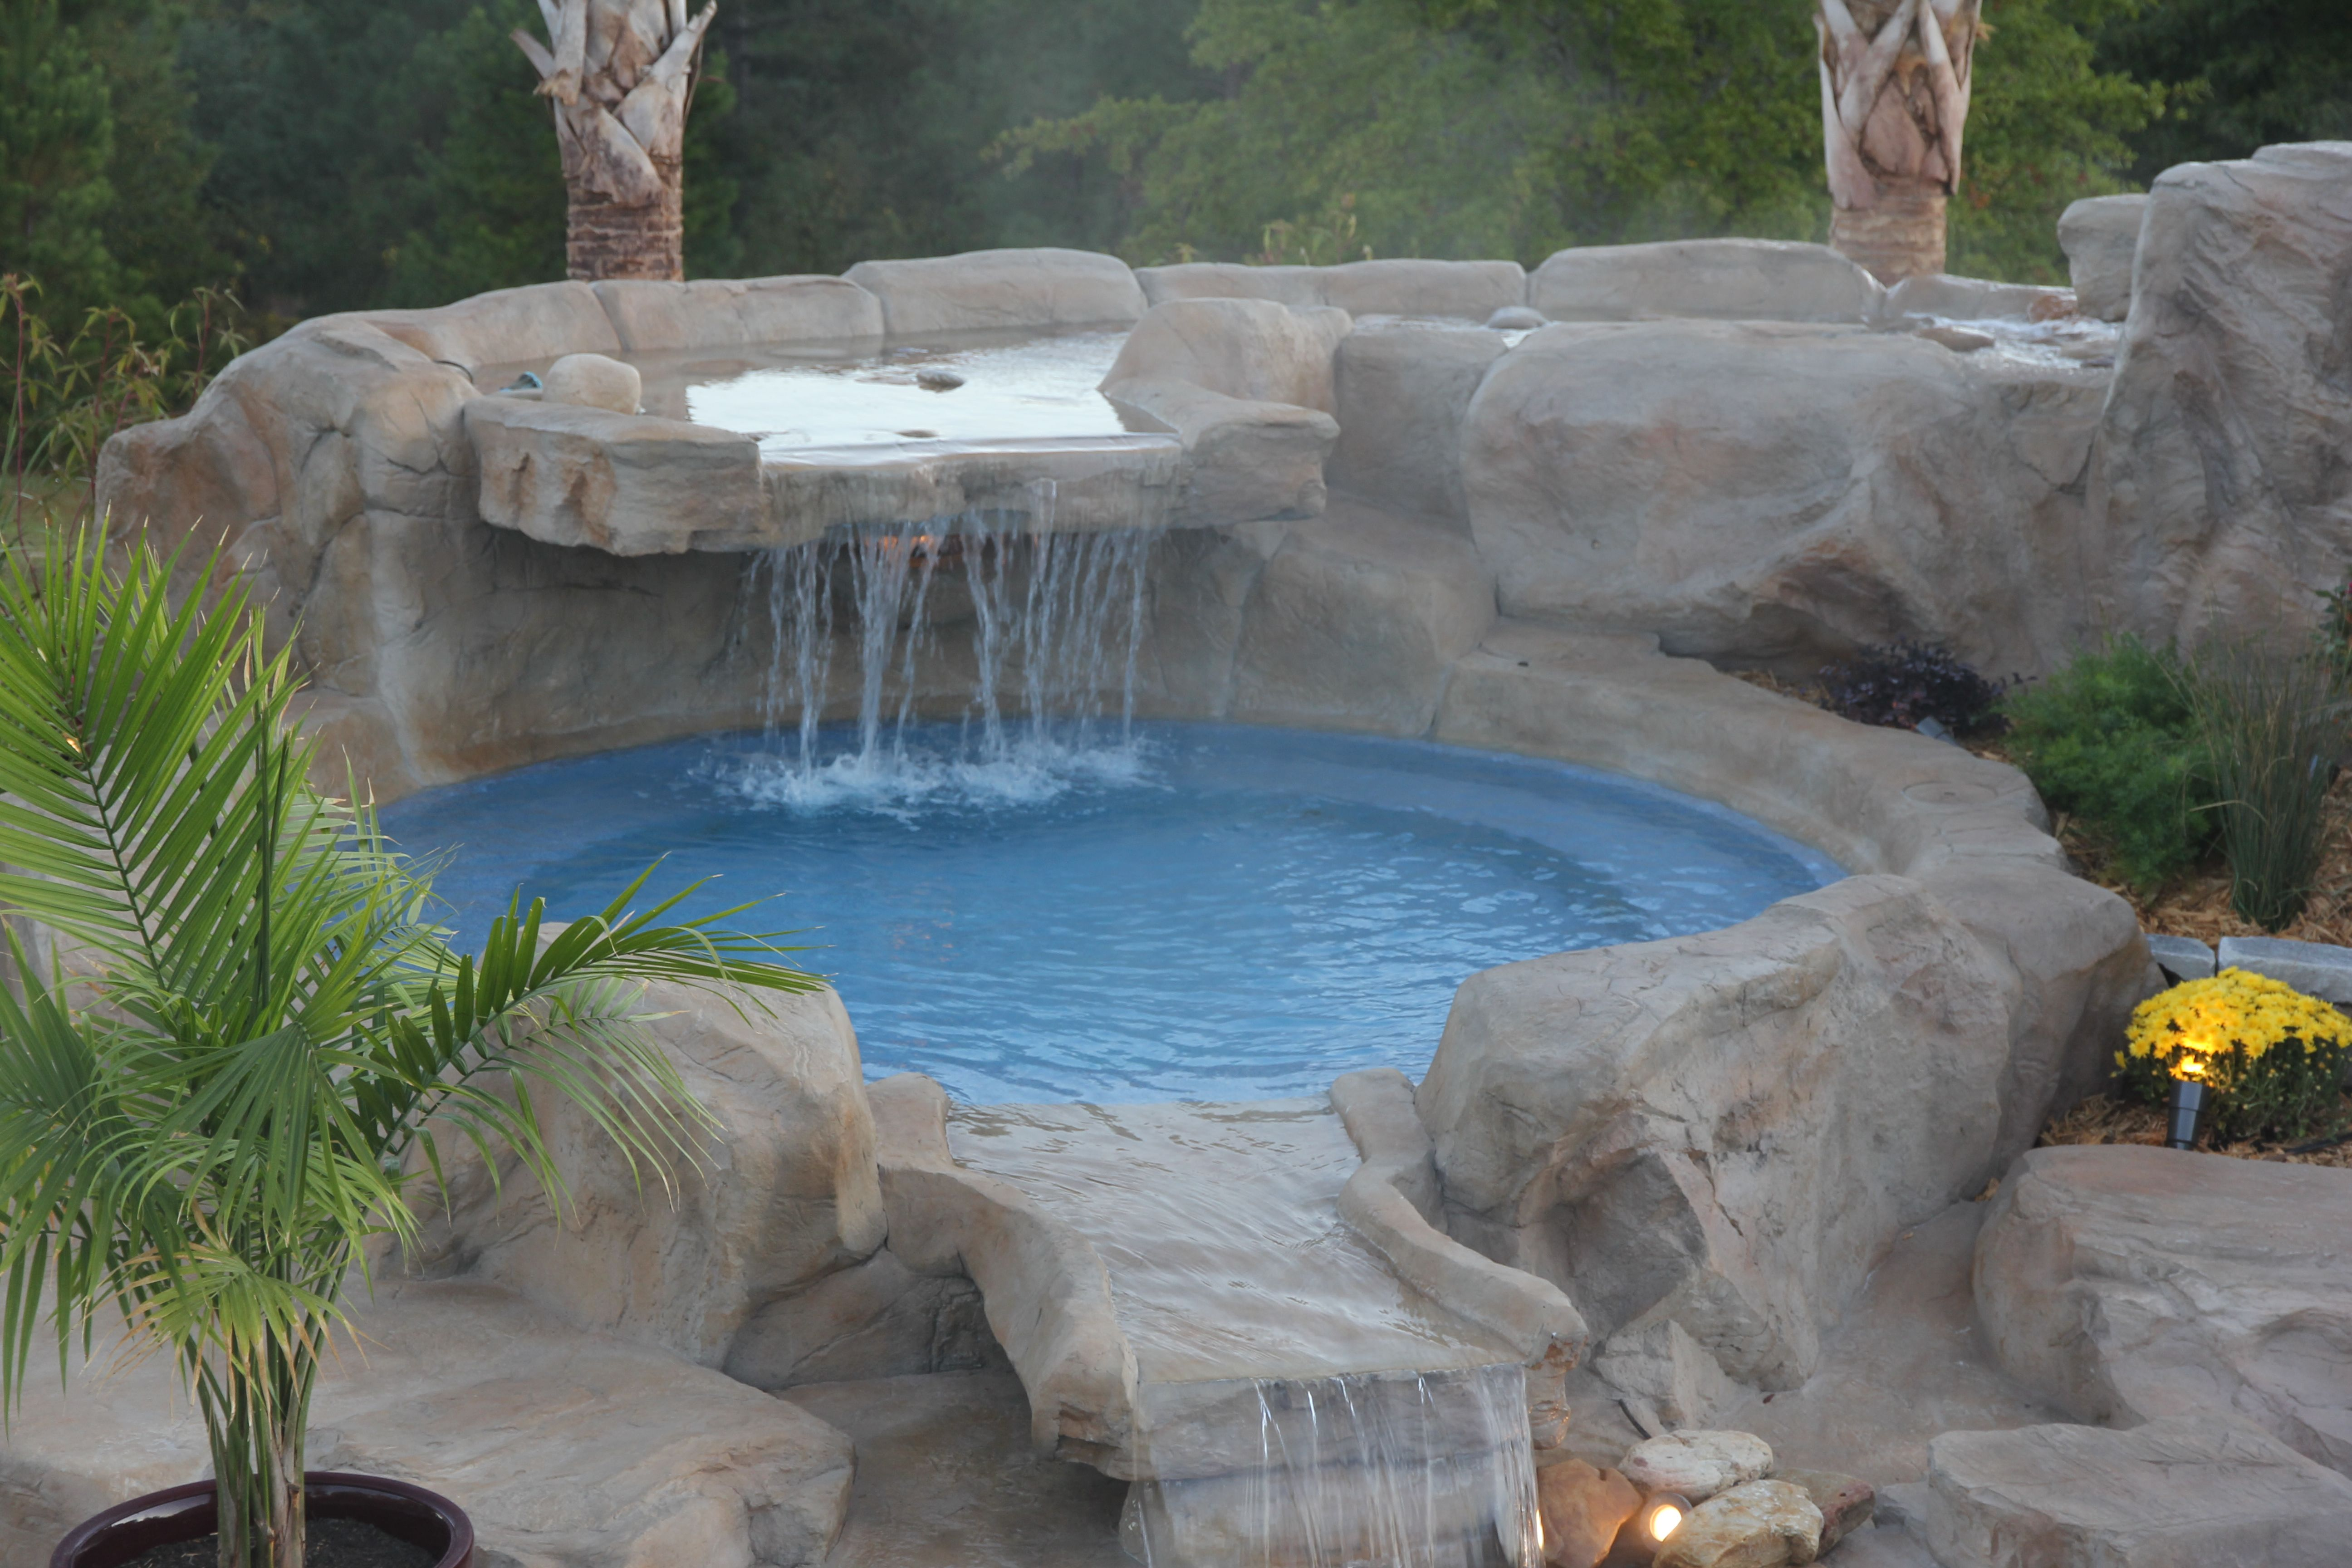 Fiberglass kiddie pool tanning pool by dolphin pools of for Rock waterfall